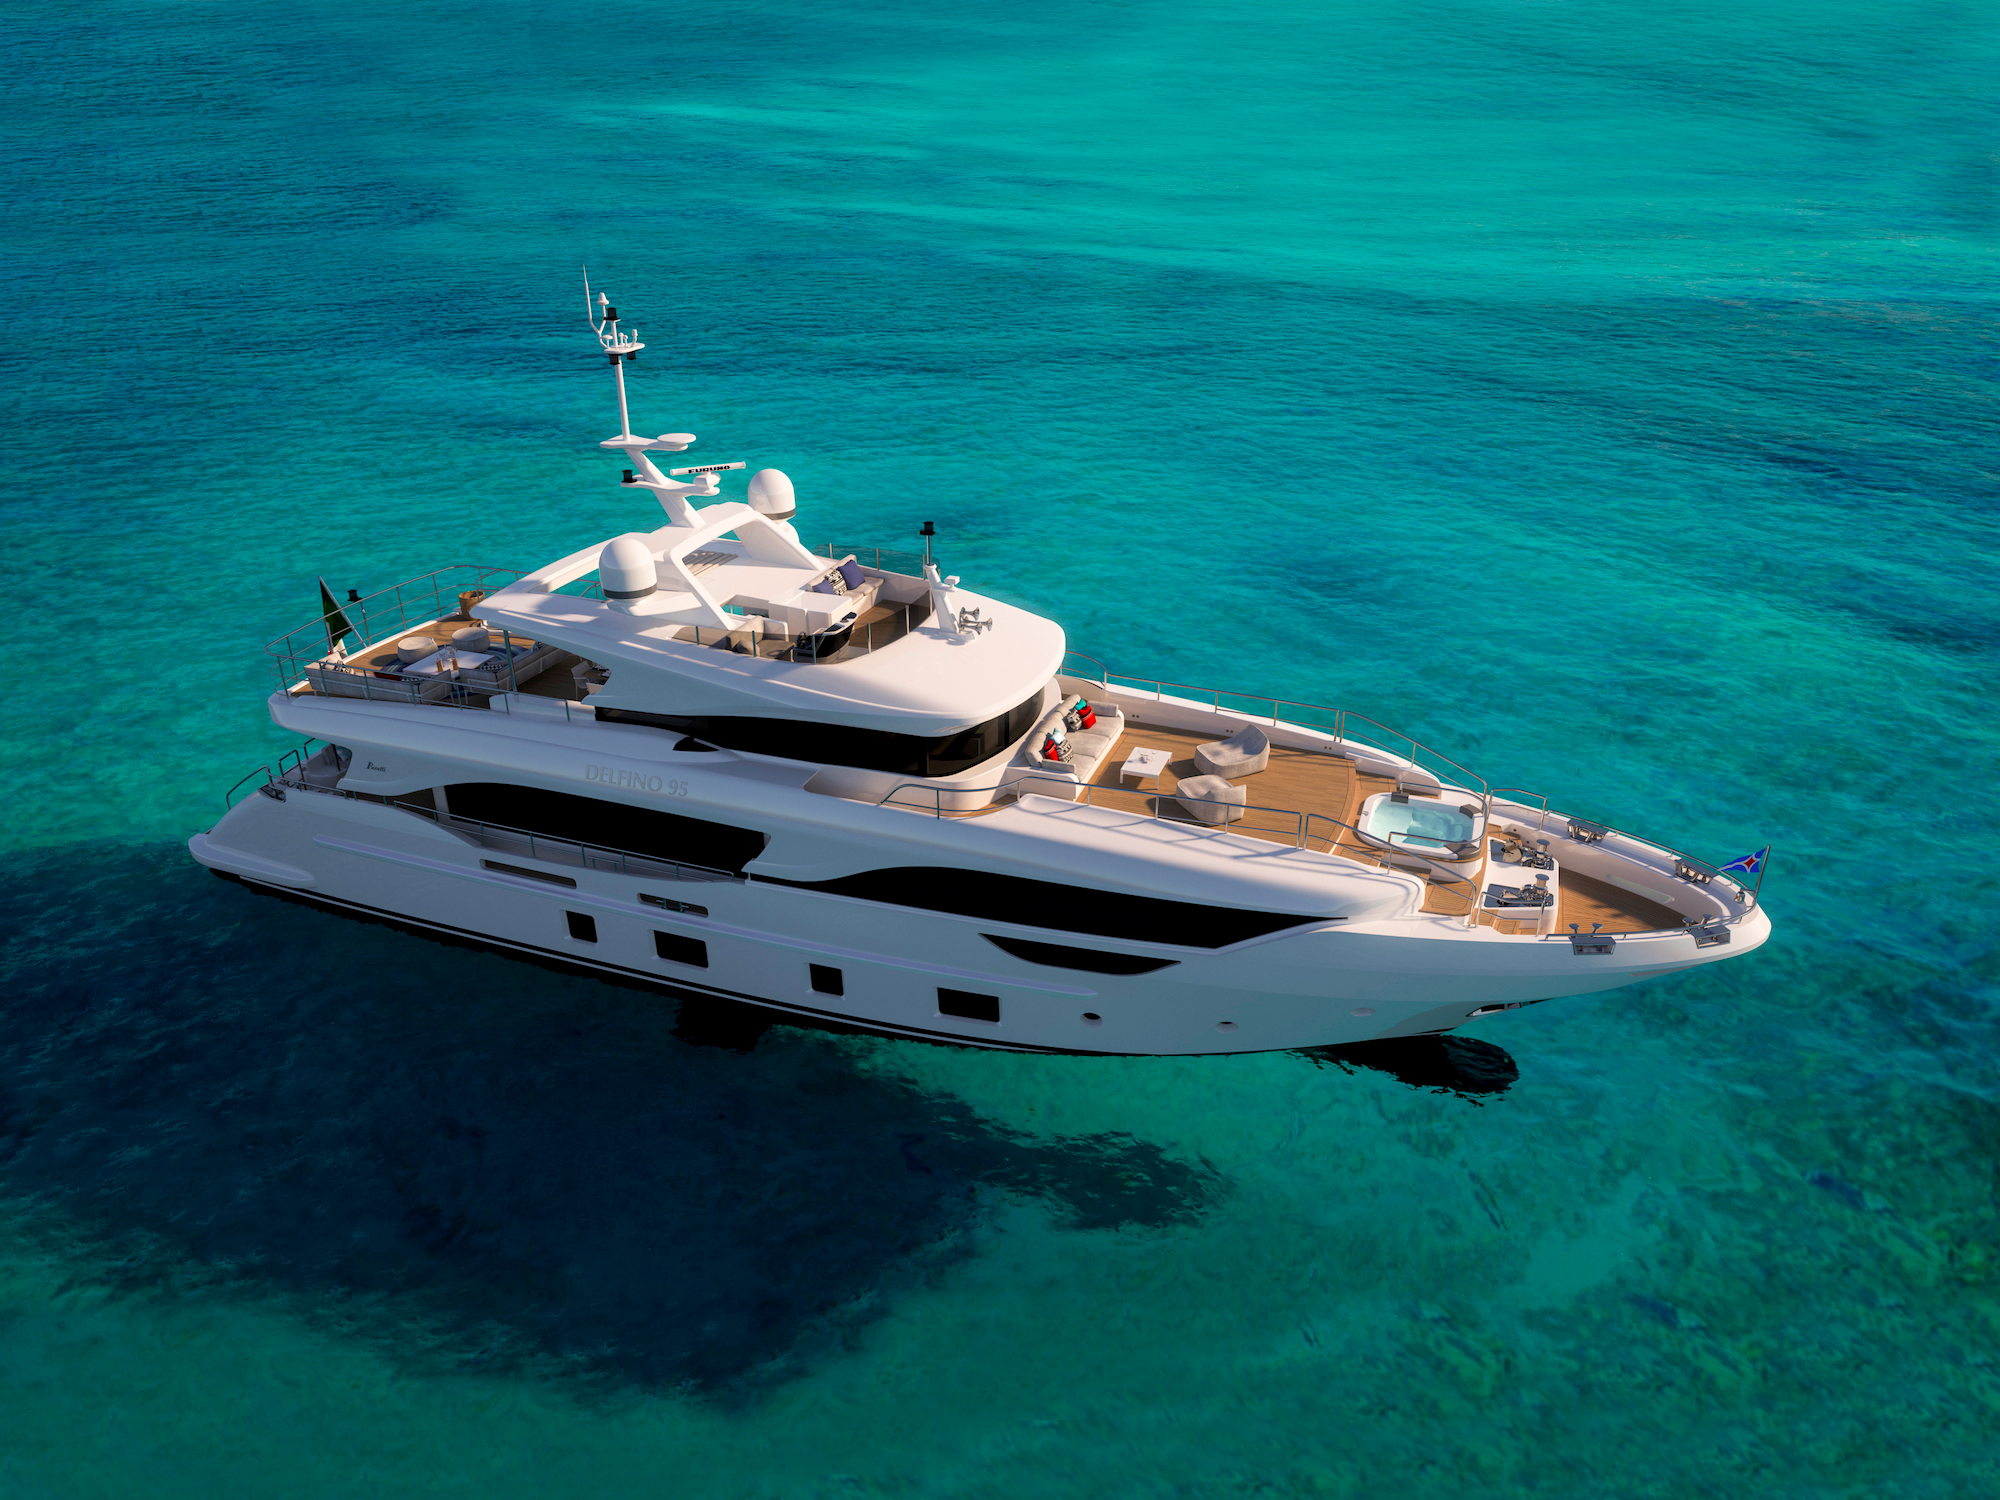 SeaNet offers the chance to co-own a luxury yacht - Business Insider